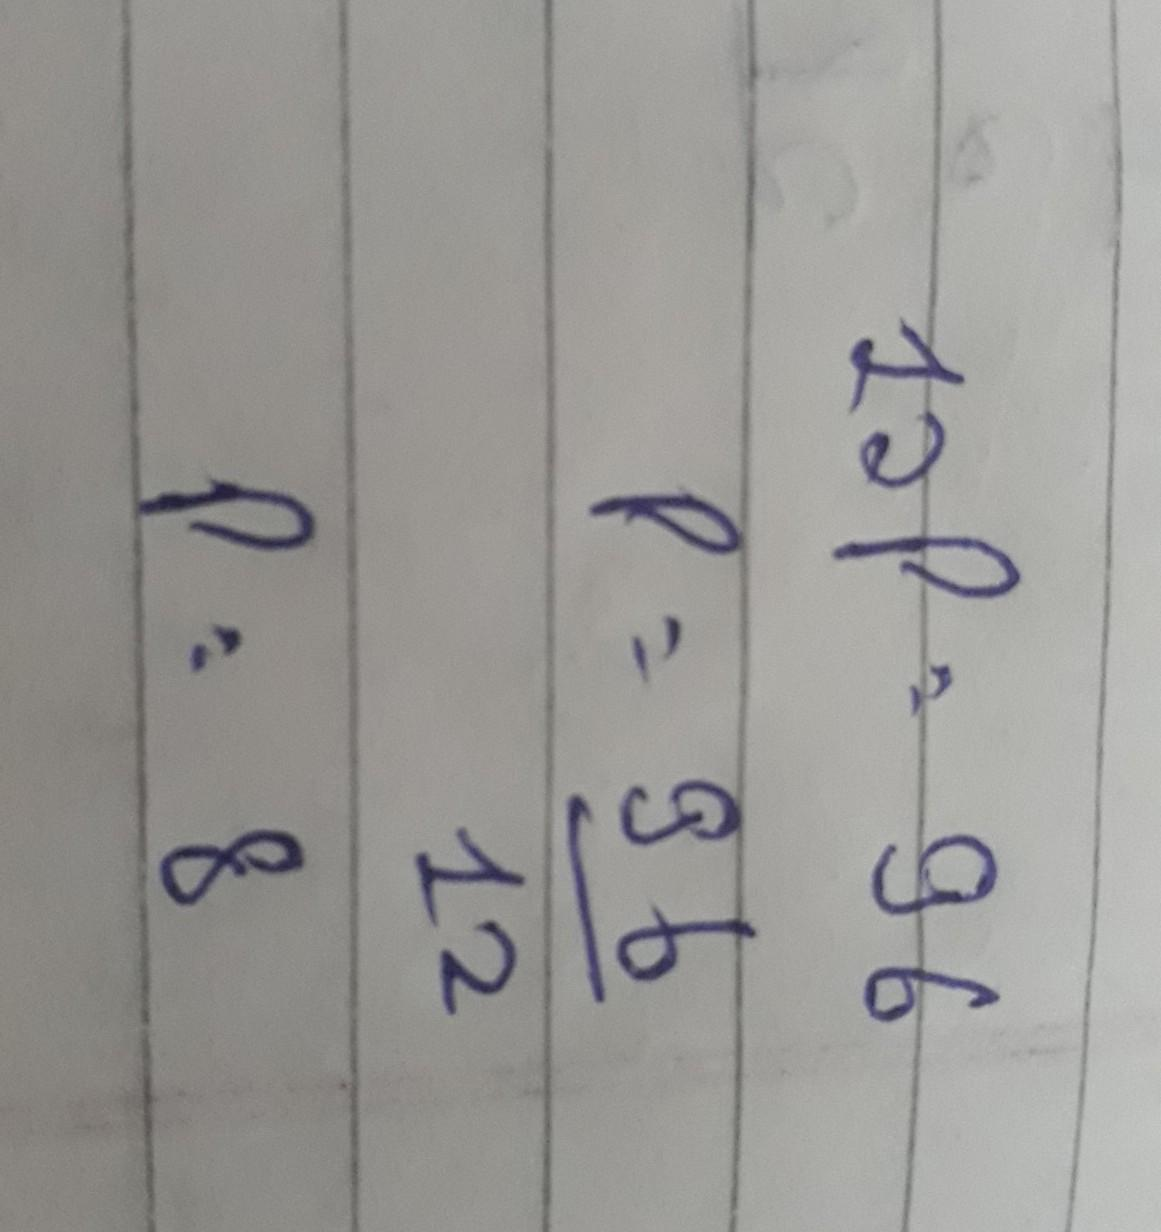 Solve the equations12p =96 - Brainly.in